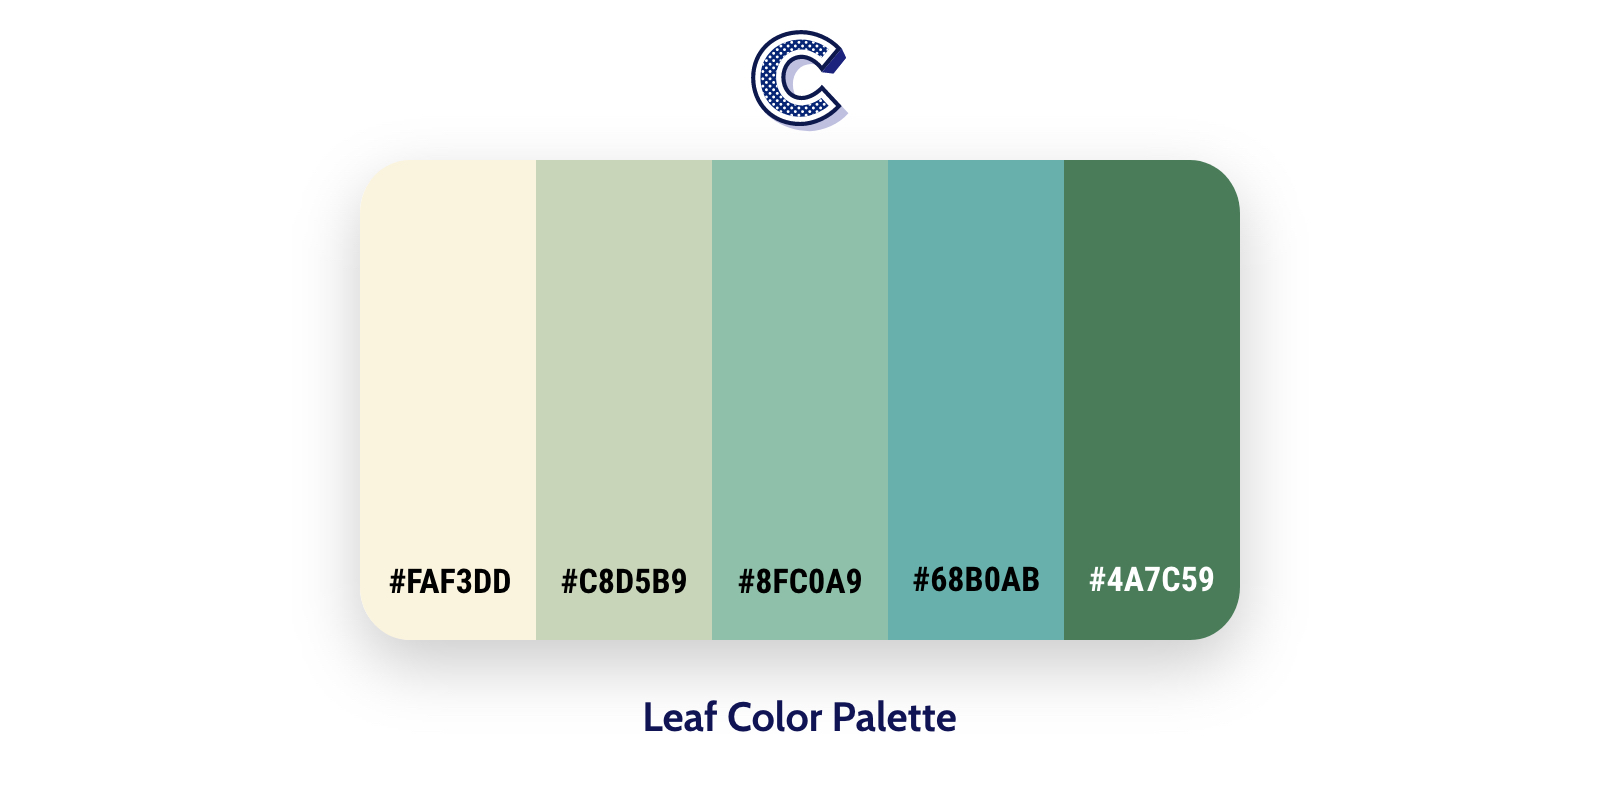 the featured image of leaf color palette